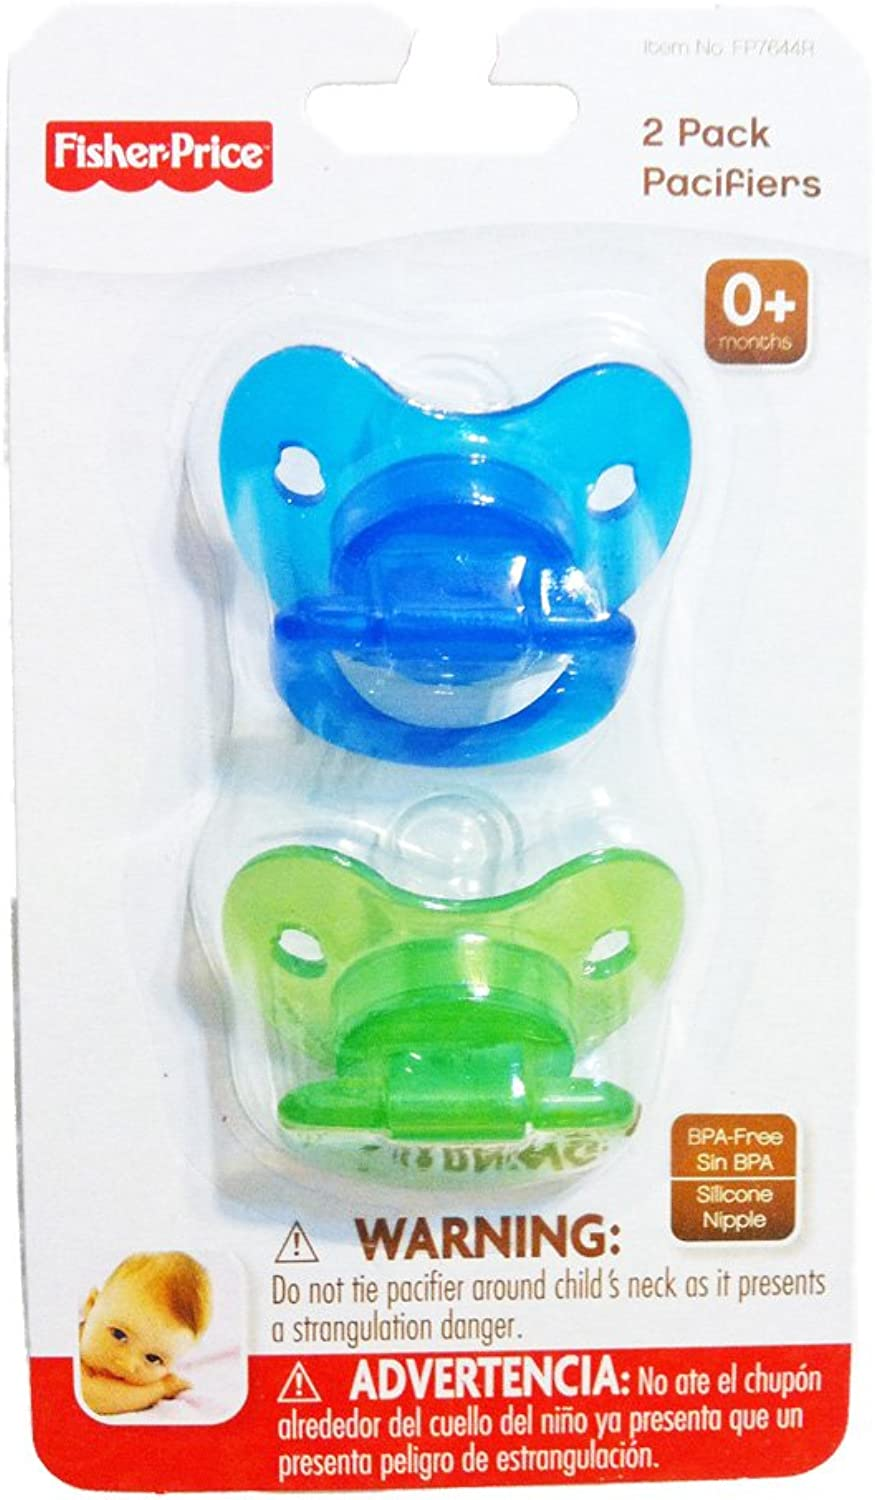 FisherPrice Pacifiers 2 Pack 0+Months (bluee & Green 2 Pack)